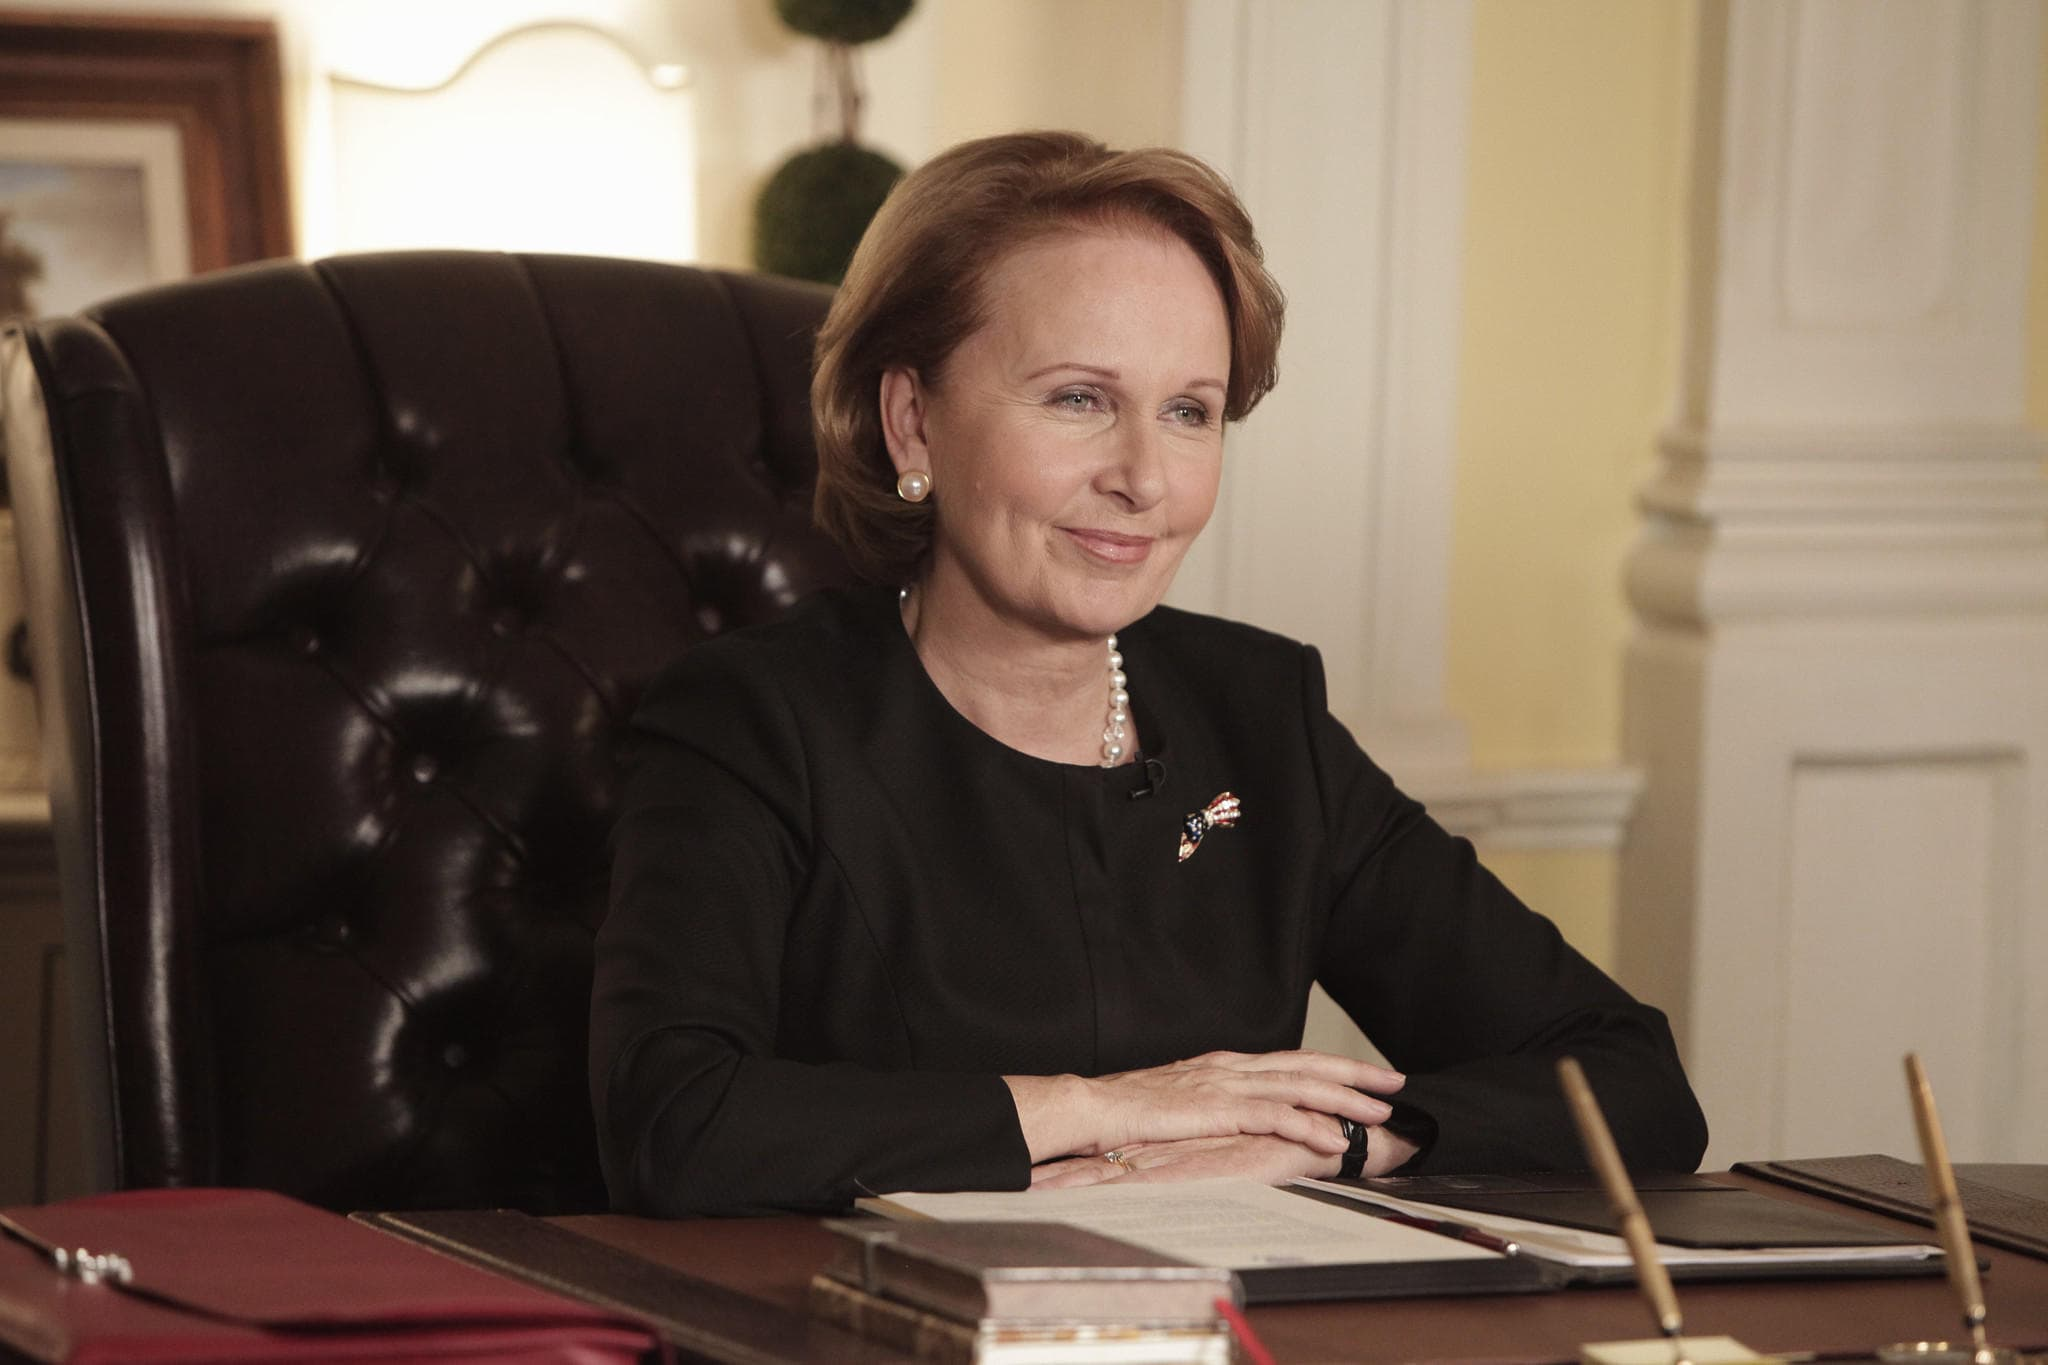 Kate Burton HQ wallpapers